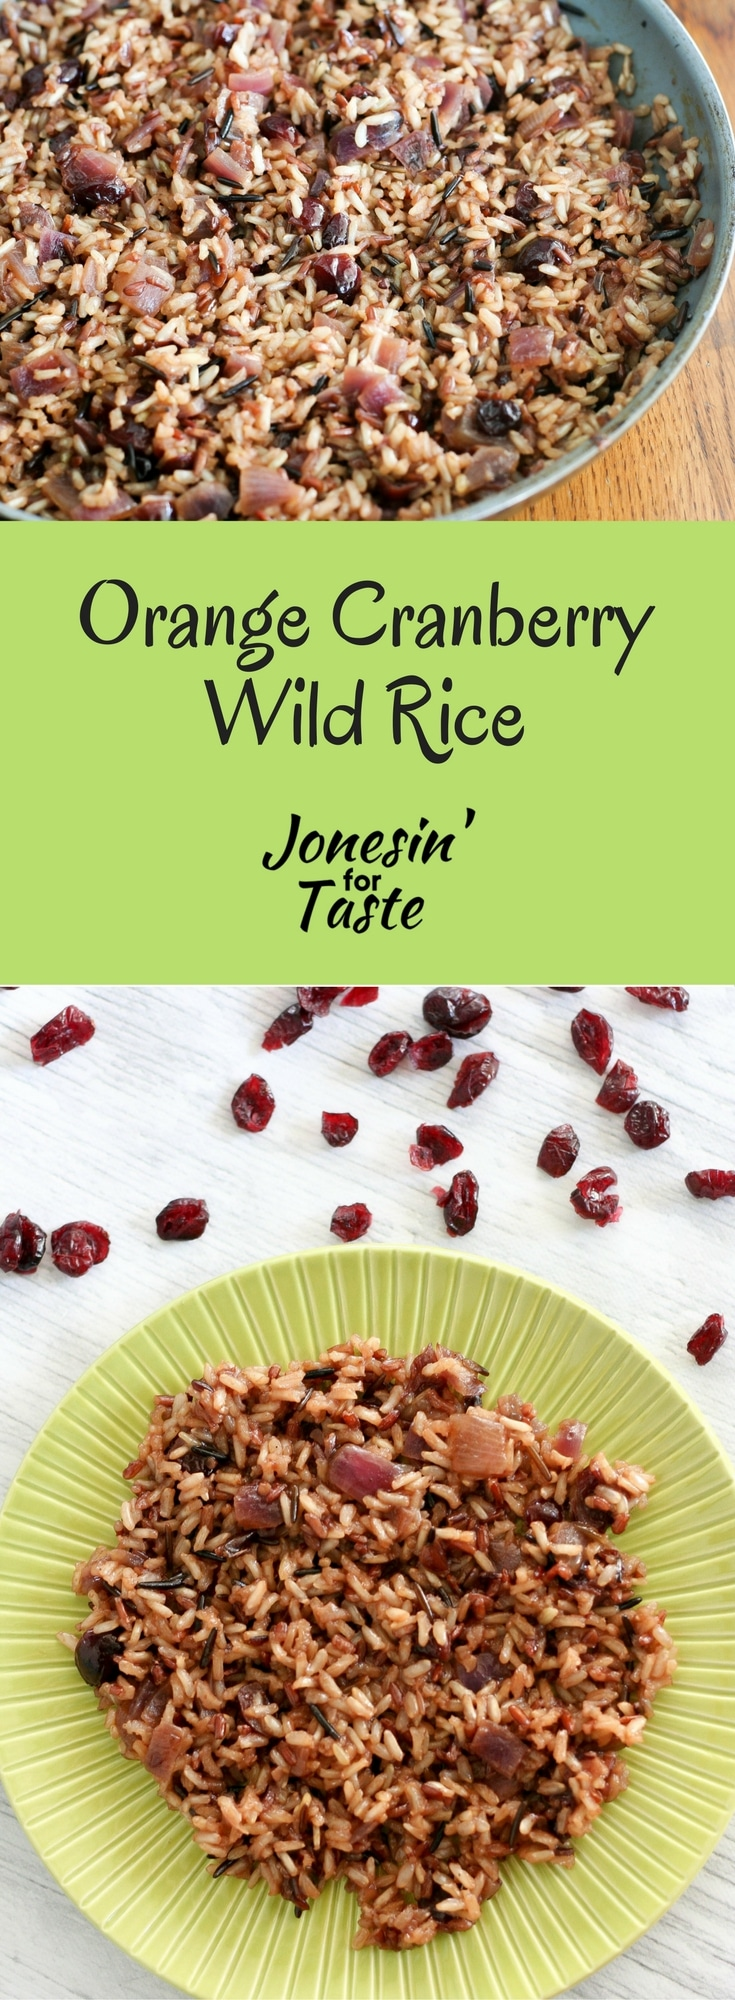 Orange Cranberry Wild Rice is a little sweet, tart, and nutty filled with the wonderful flavors of fall. #cranberryweek #Thanksgivingrecipes